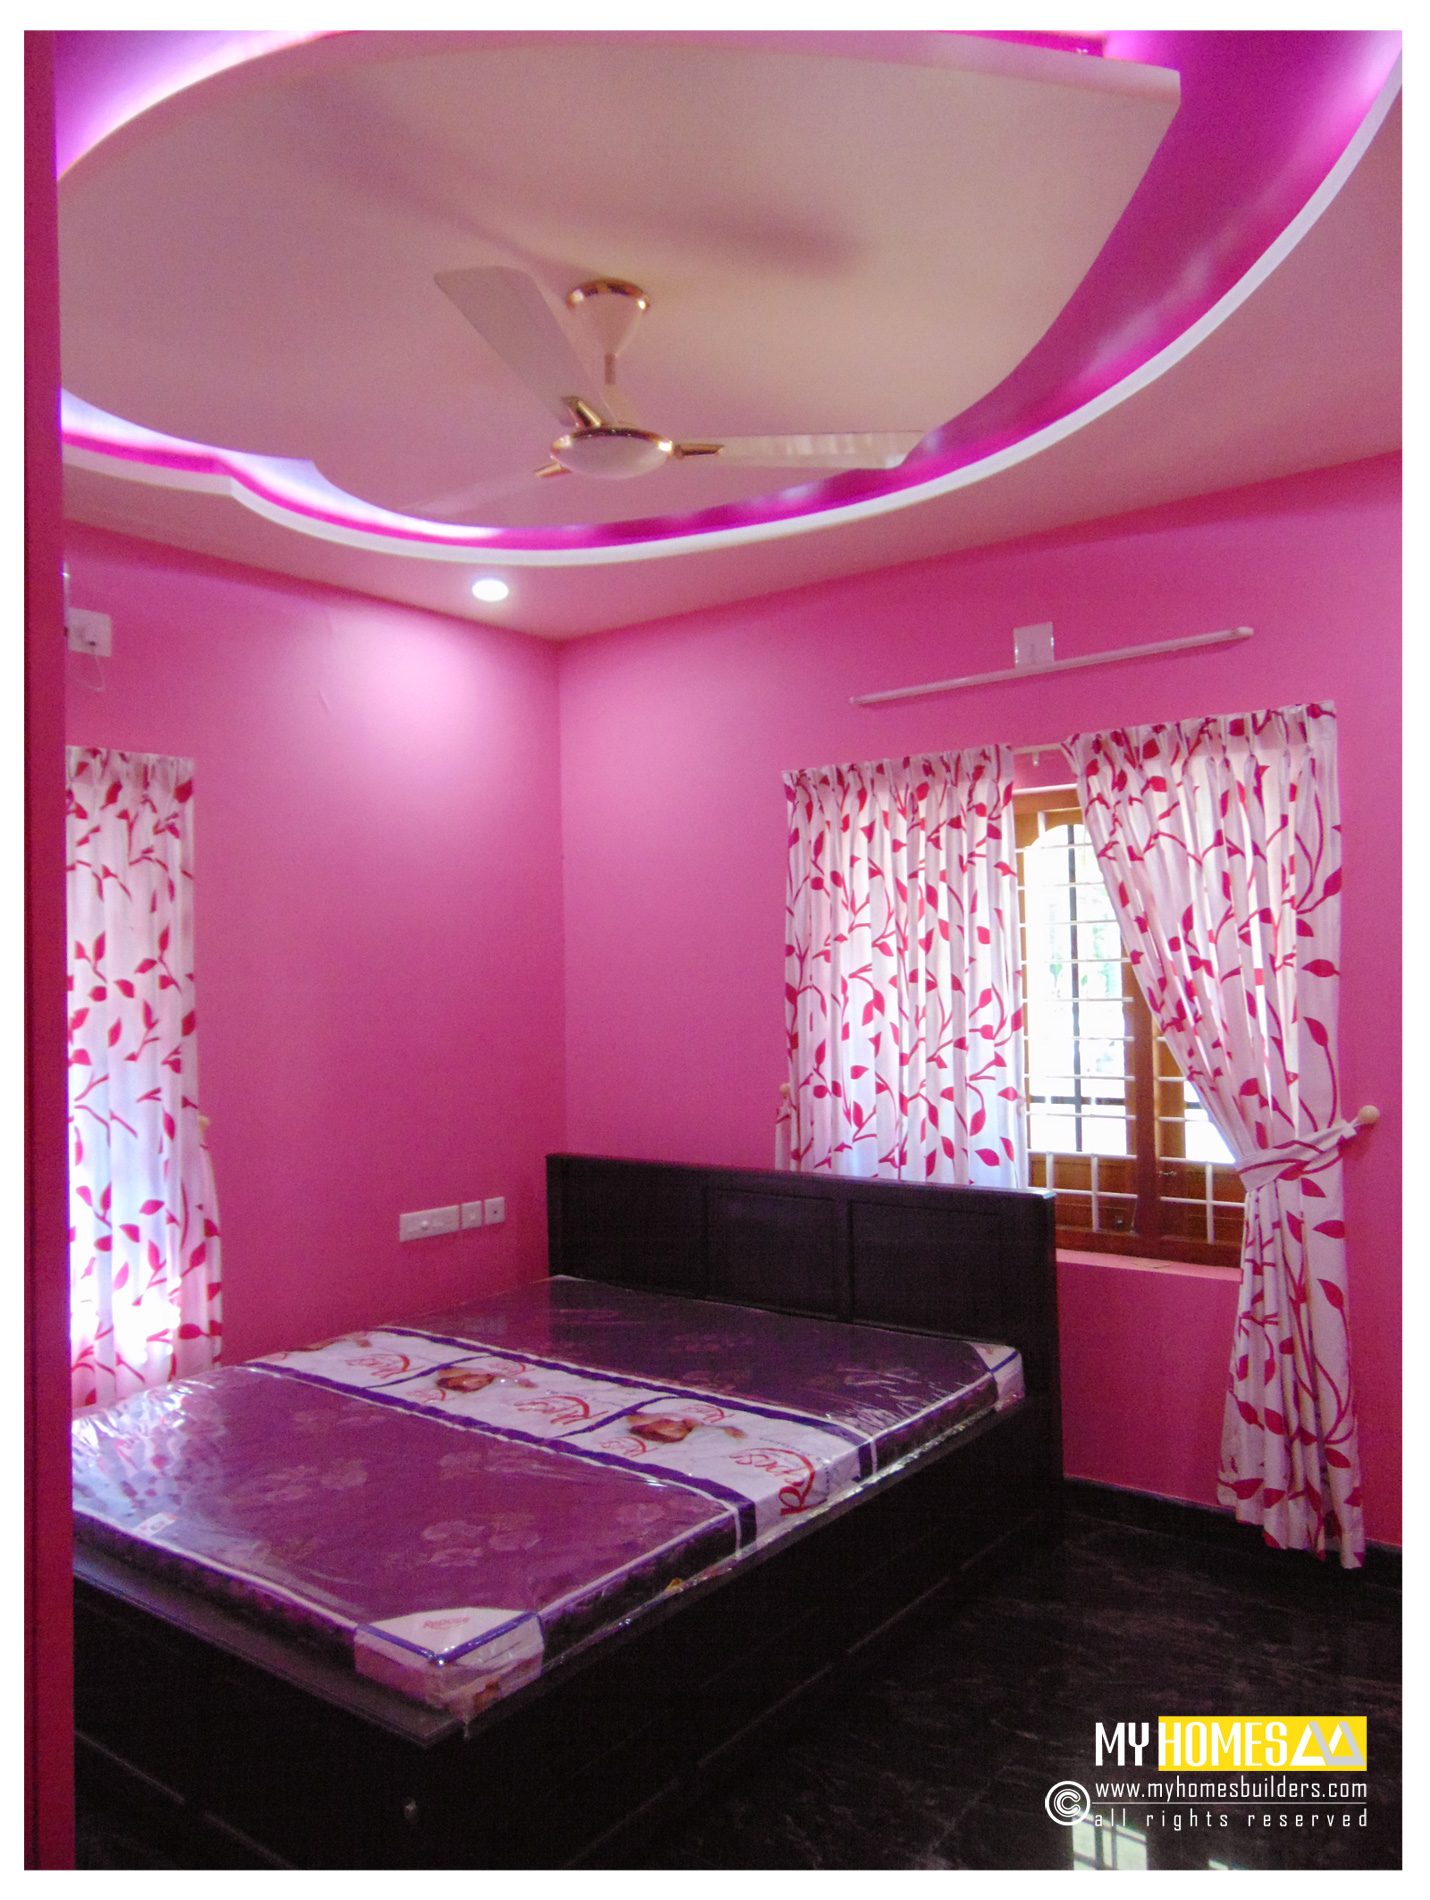 Simple style kerala bedroom designs ideas for home interior for House interior design kerala photos